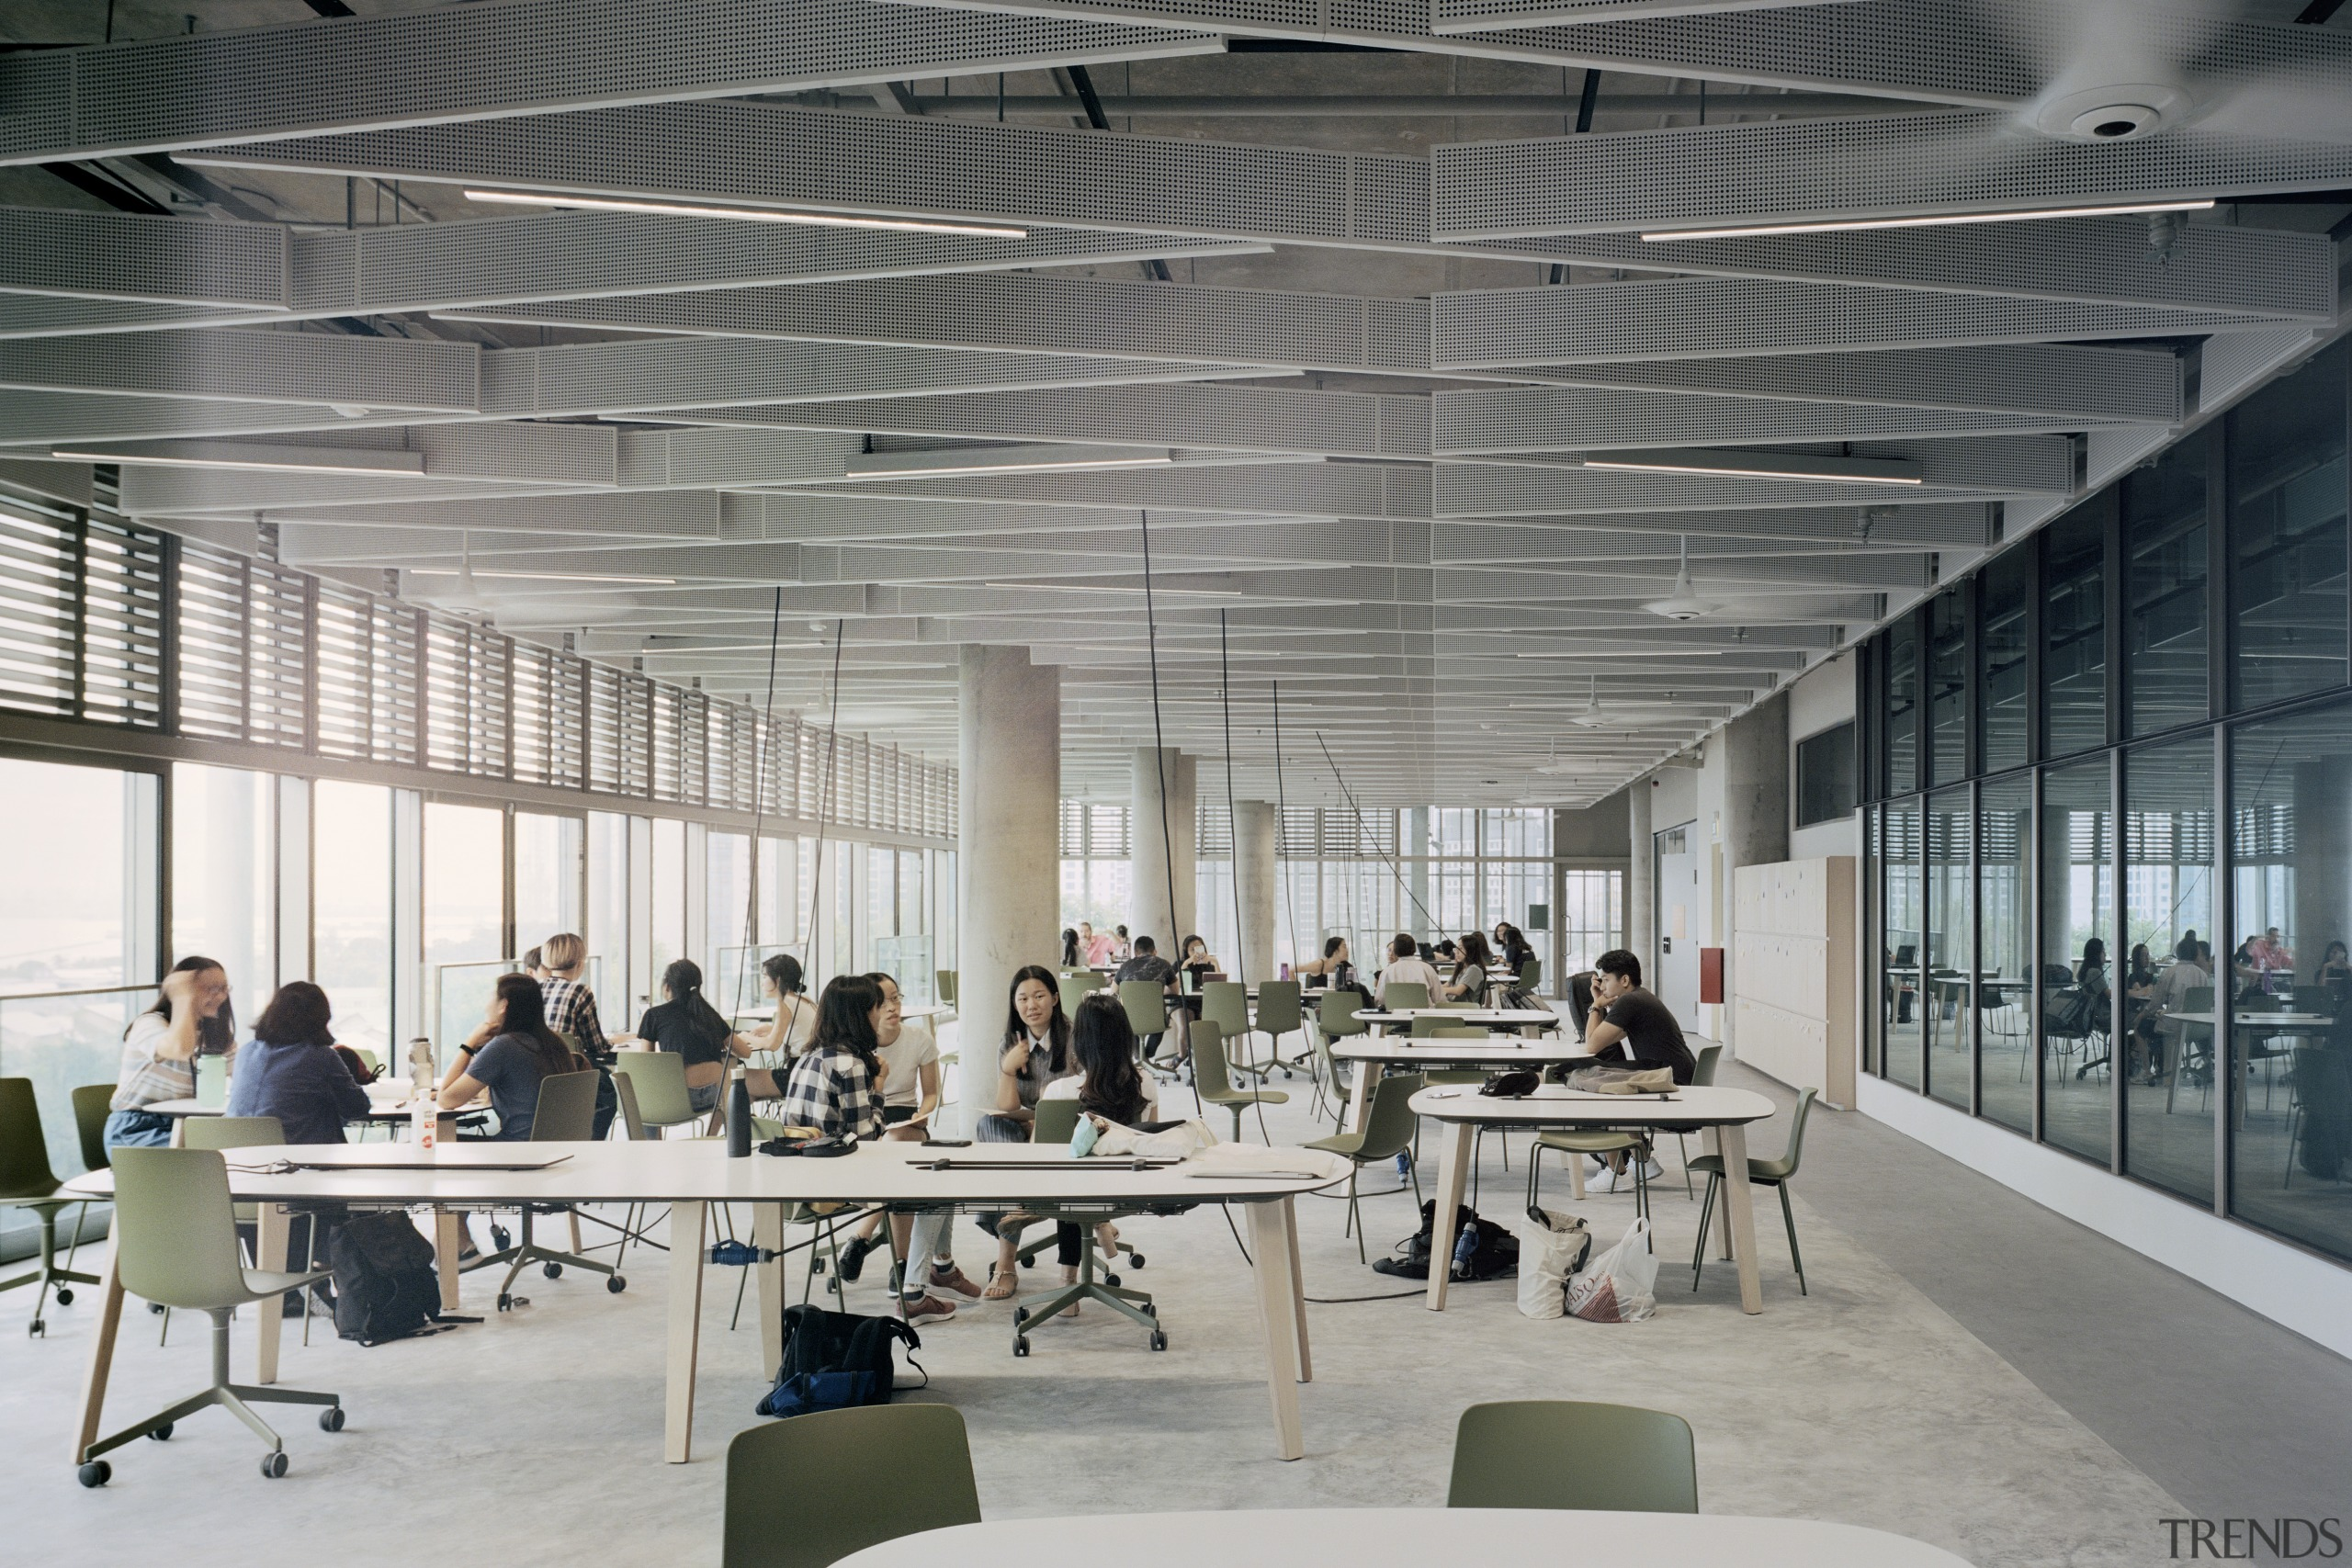 The modern SDE4 building draws on classic architectural architecture, building, ceiling, design, furniture, interior design, office, room, table, gray